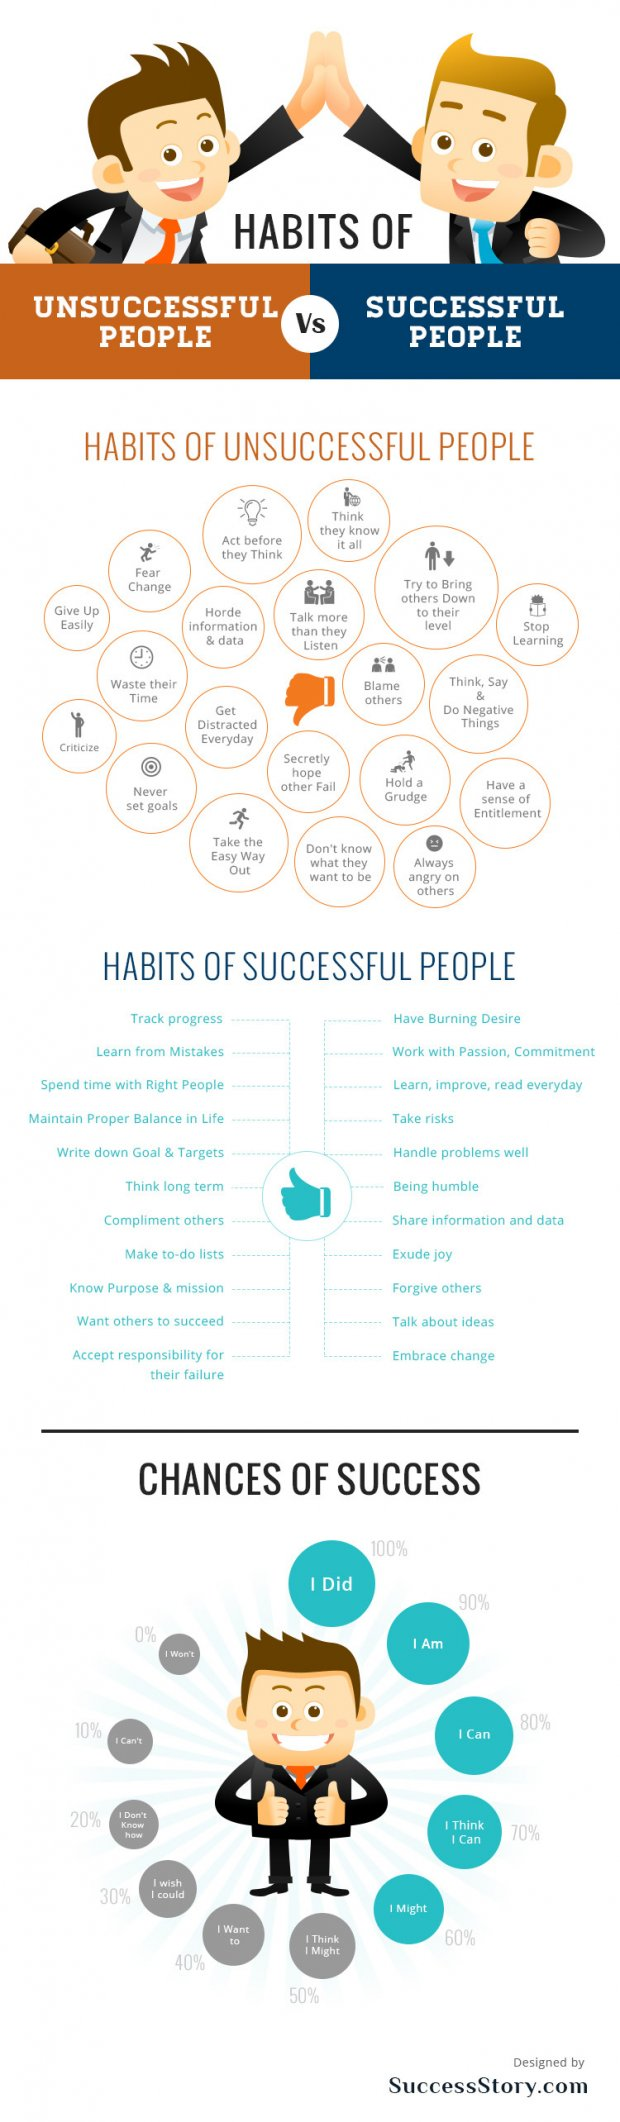 Habits of Unsuccessful People Vs Successful People (Infographic)